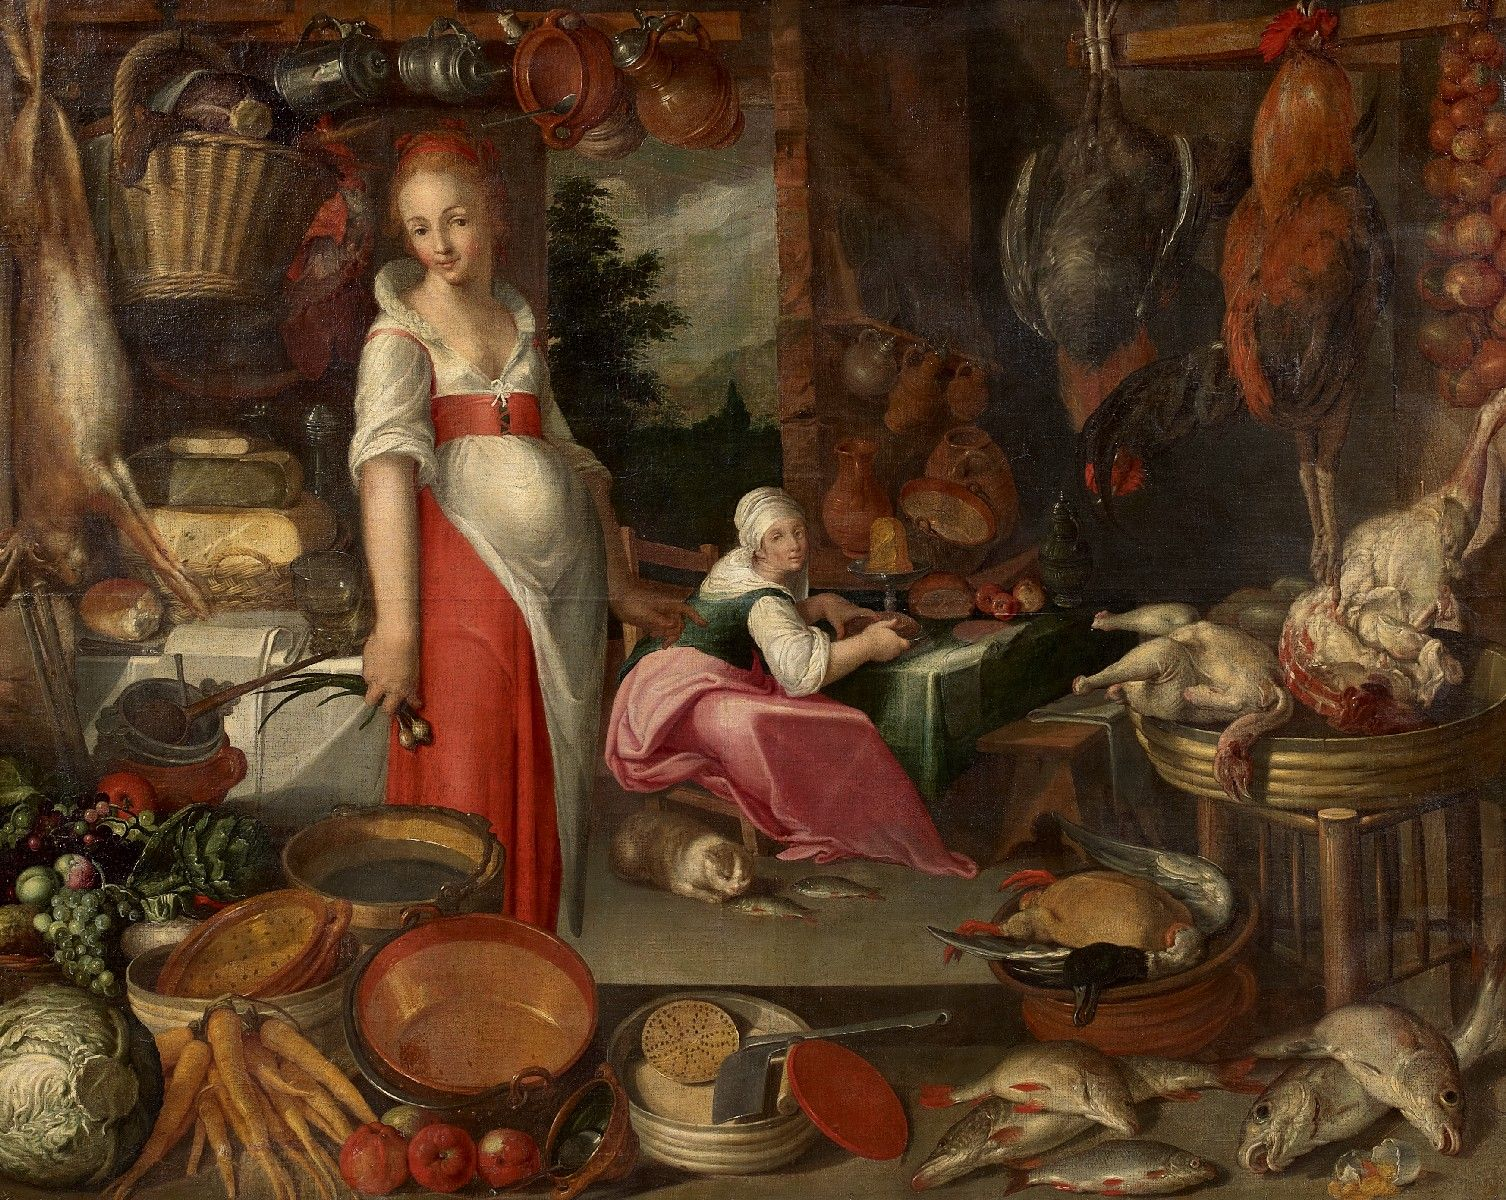 siftingthepast_kitchen-with-pieces-cook-and-kitchen-maid_unknown_16th-century